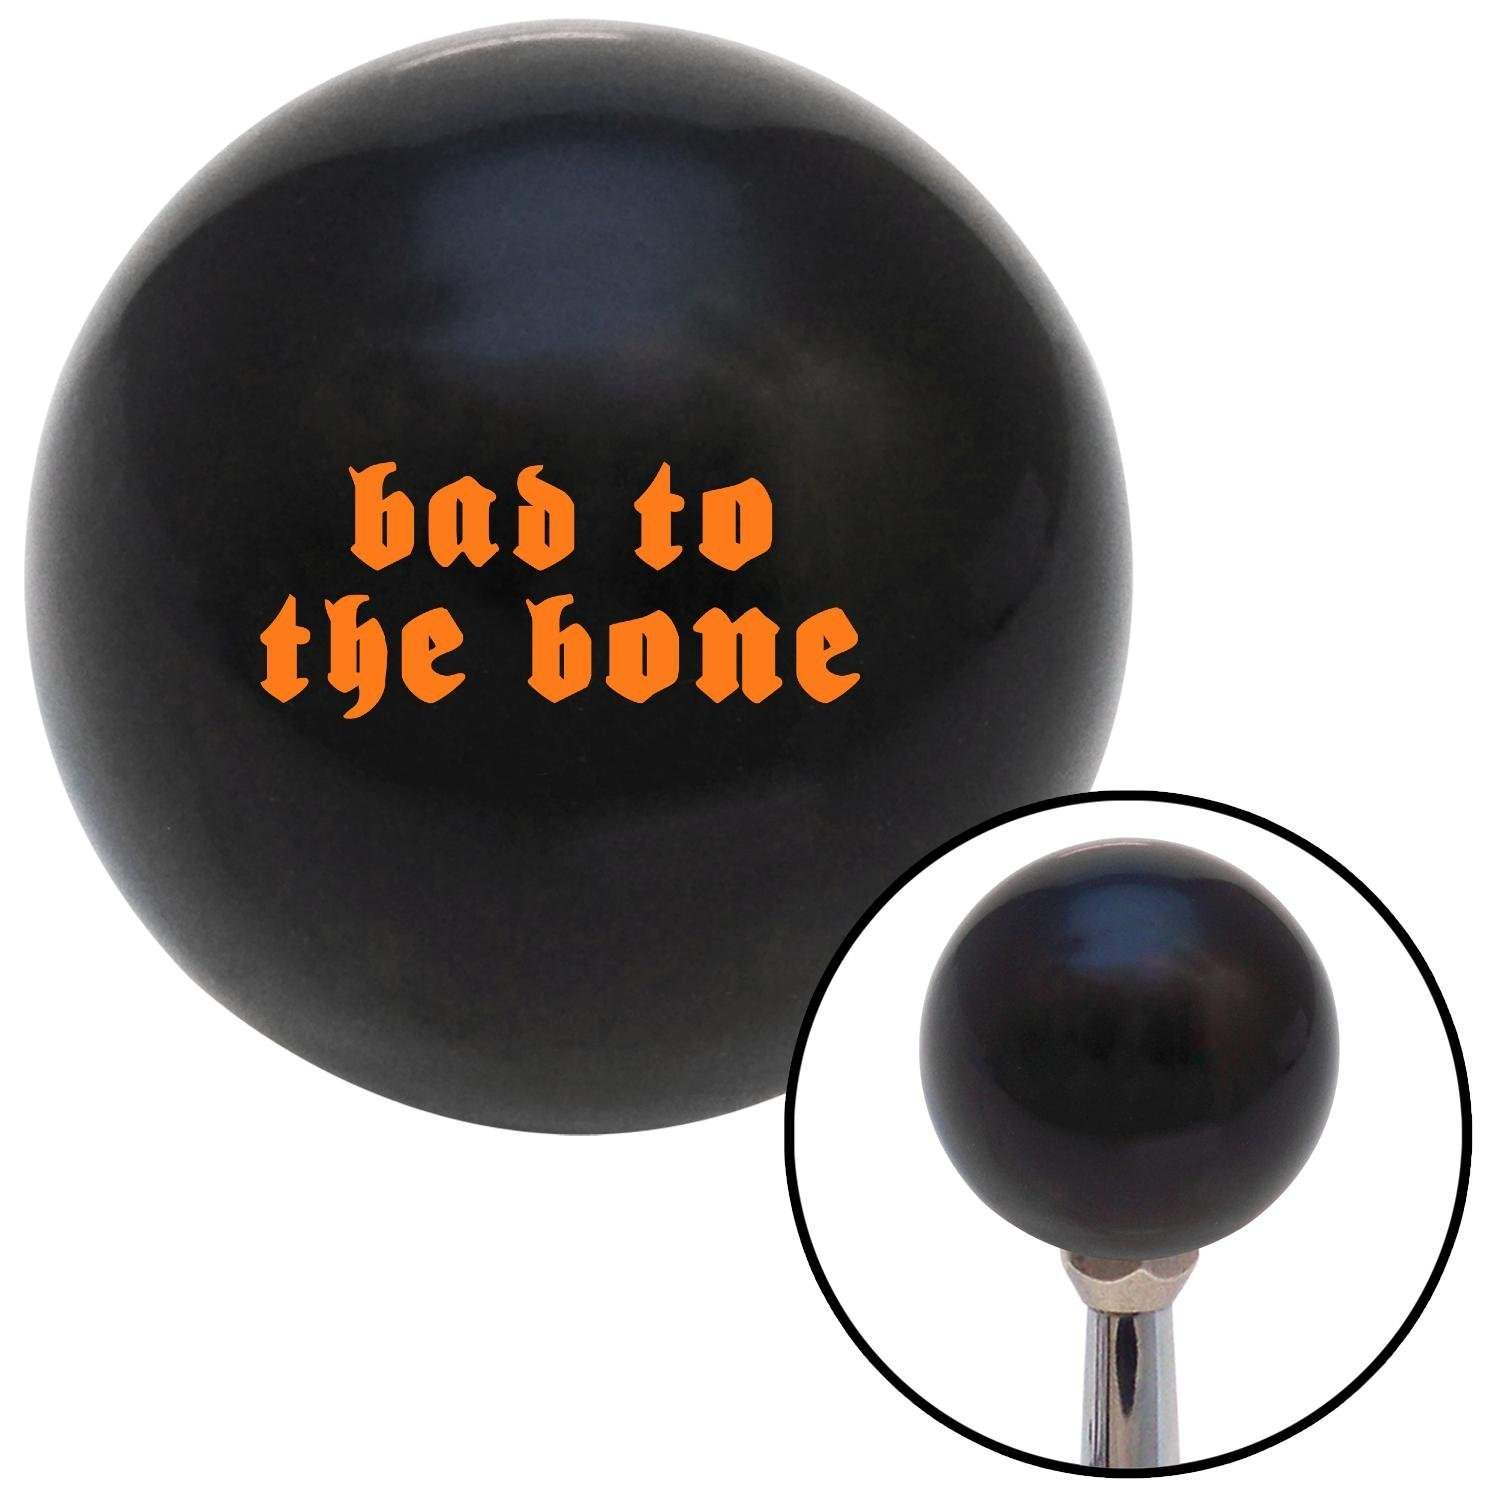 Orange Bad to The Bone American Shifter 110388 Black Shift Knob with M16 x 1.5 Insert